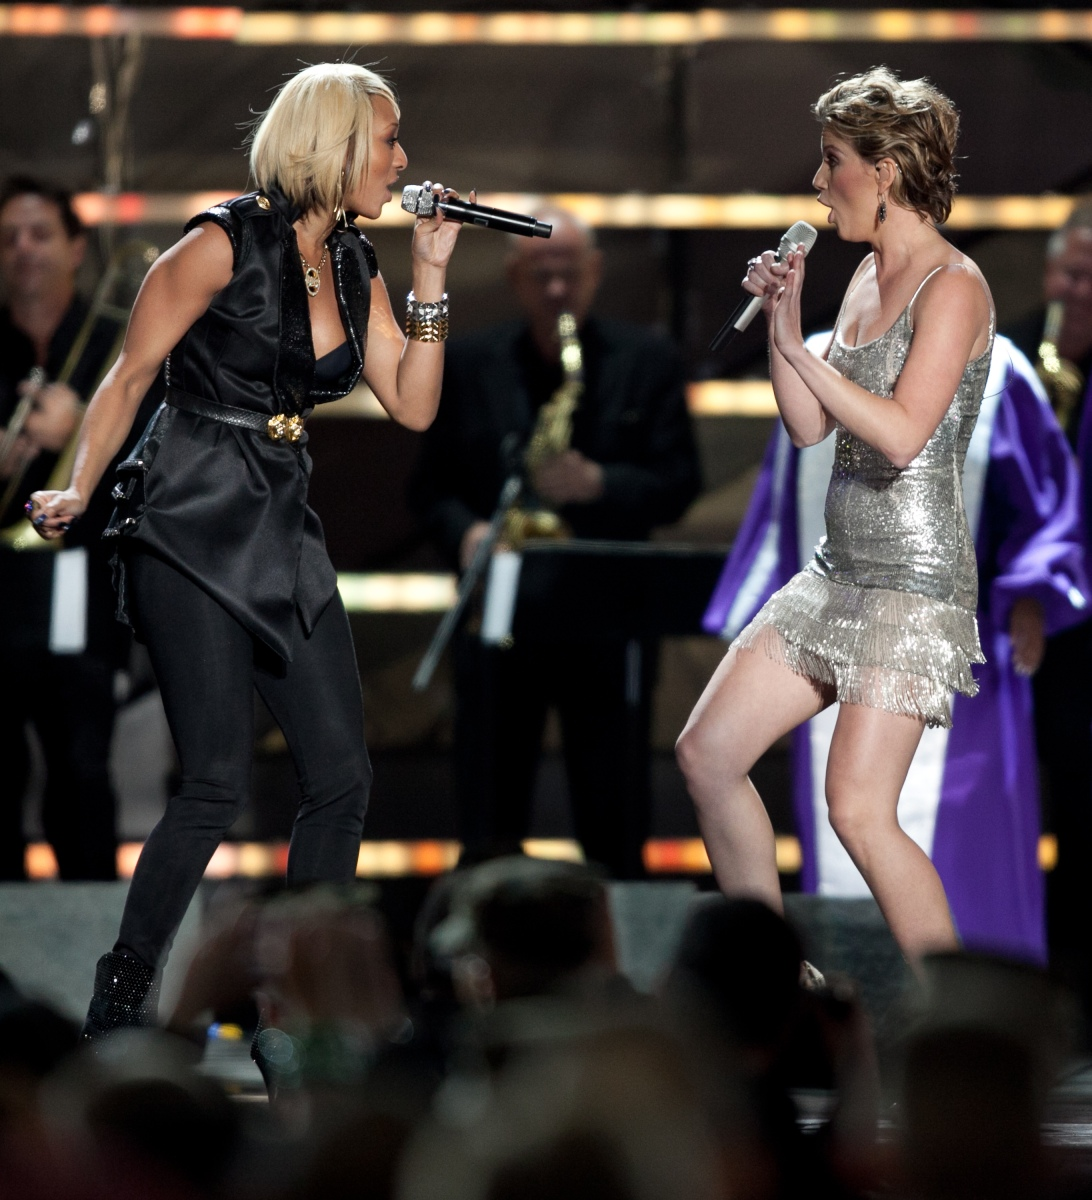 Keri Hilson with Jennifer Nettles from Sugarland